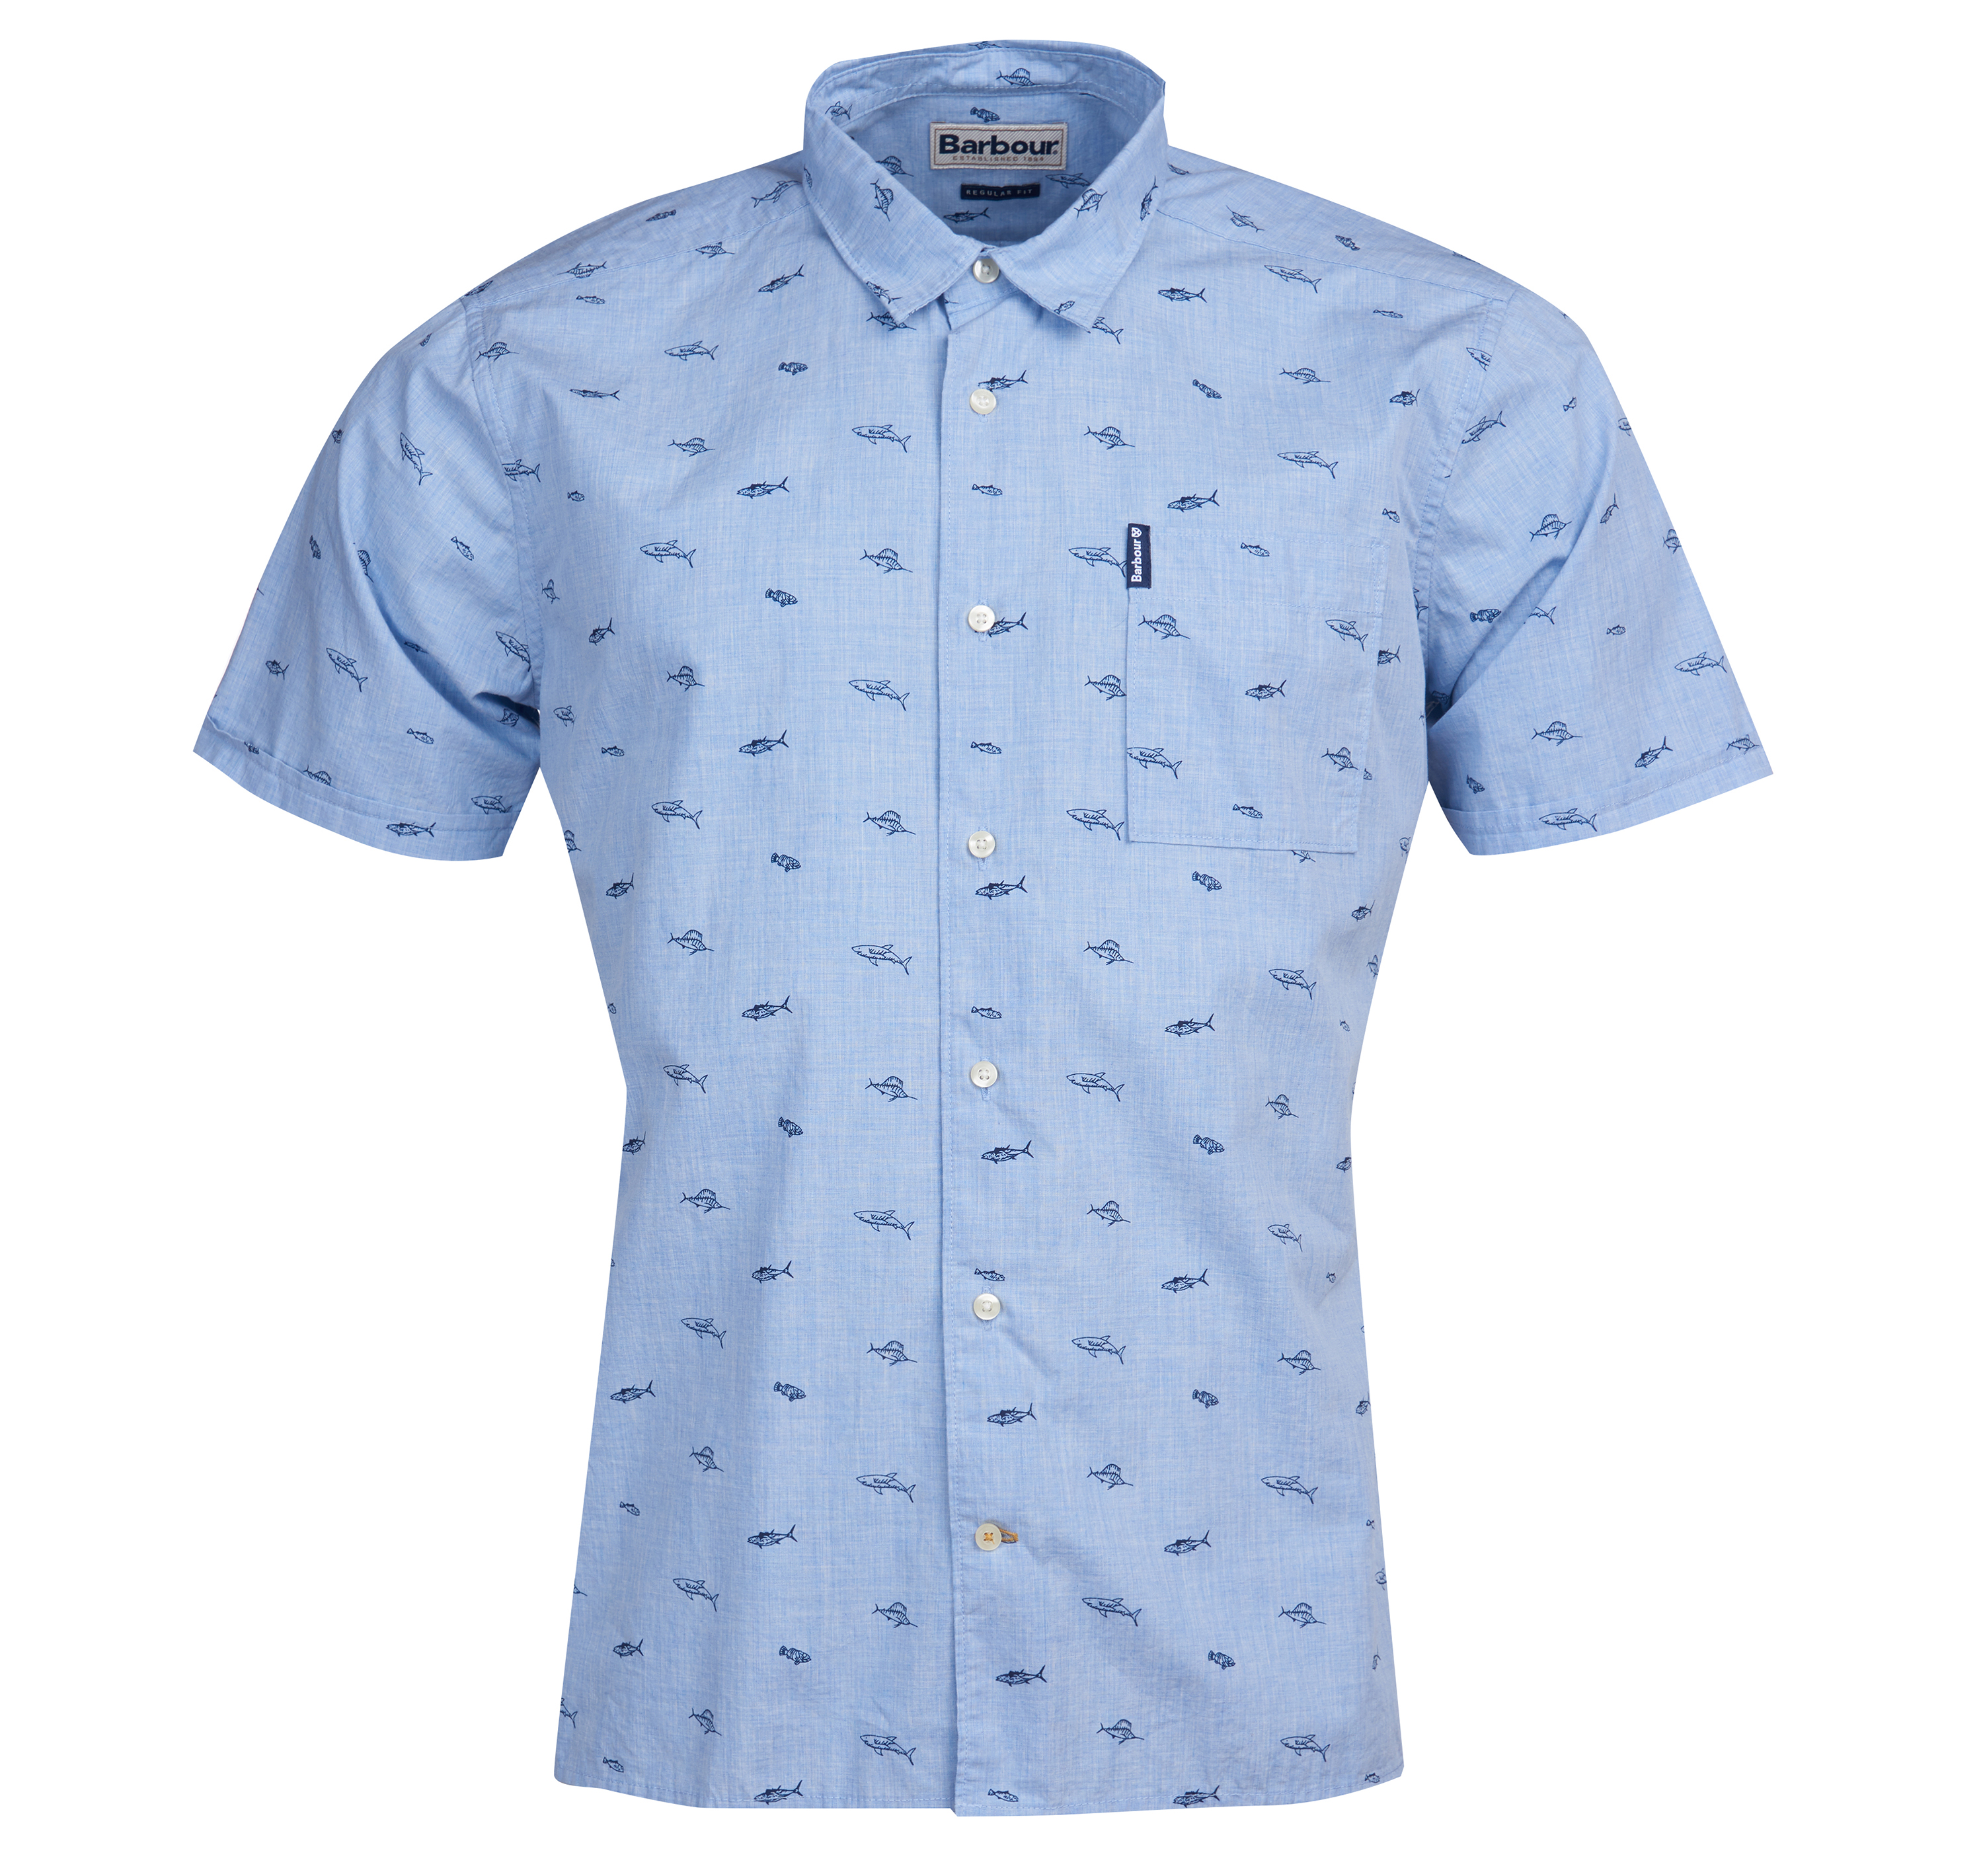 Barbour Summer Print 4 Short Sleeved Shirt Tailored Fit